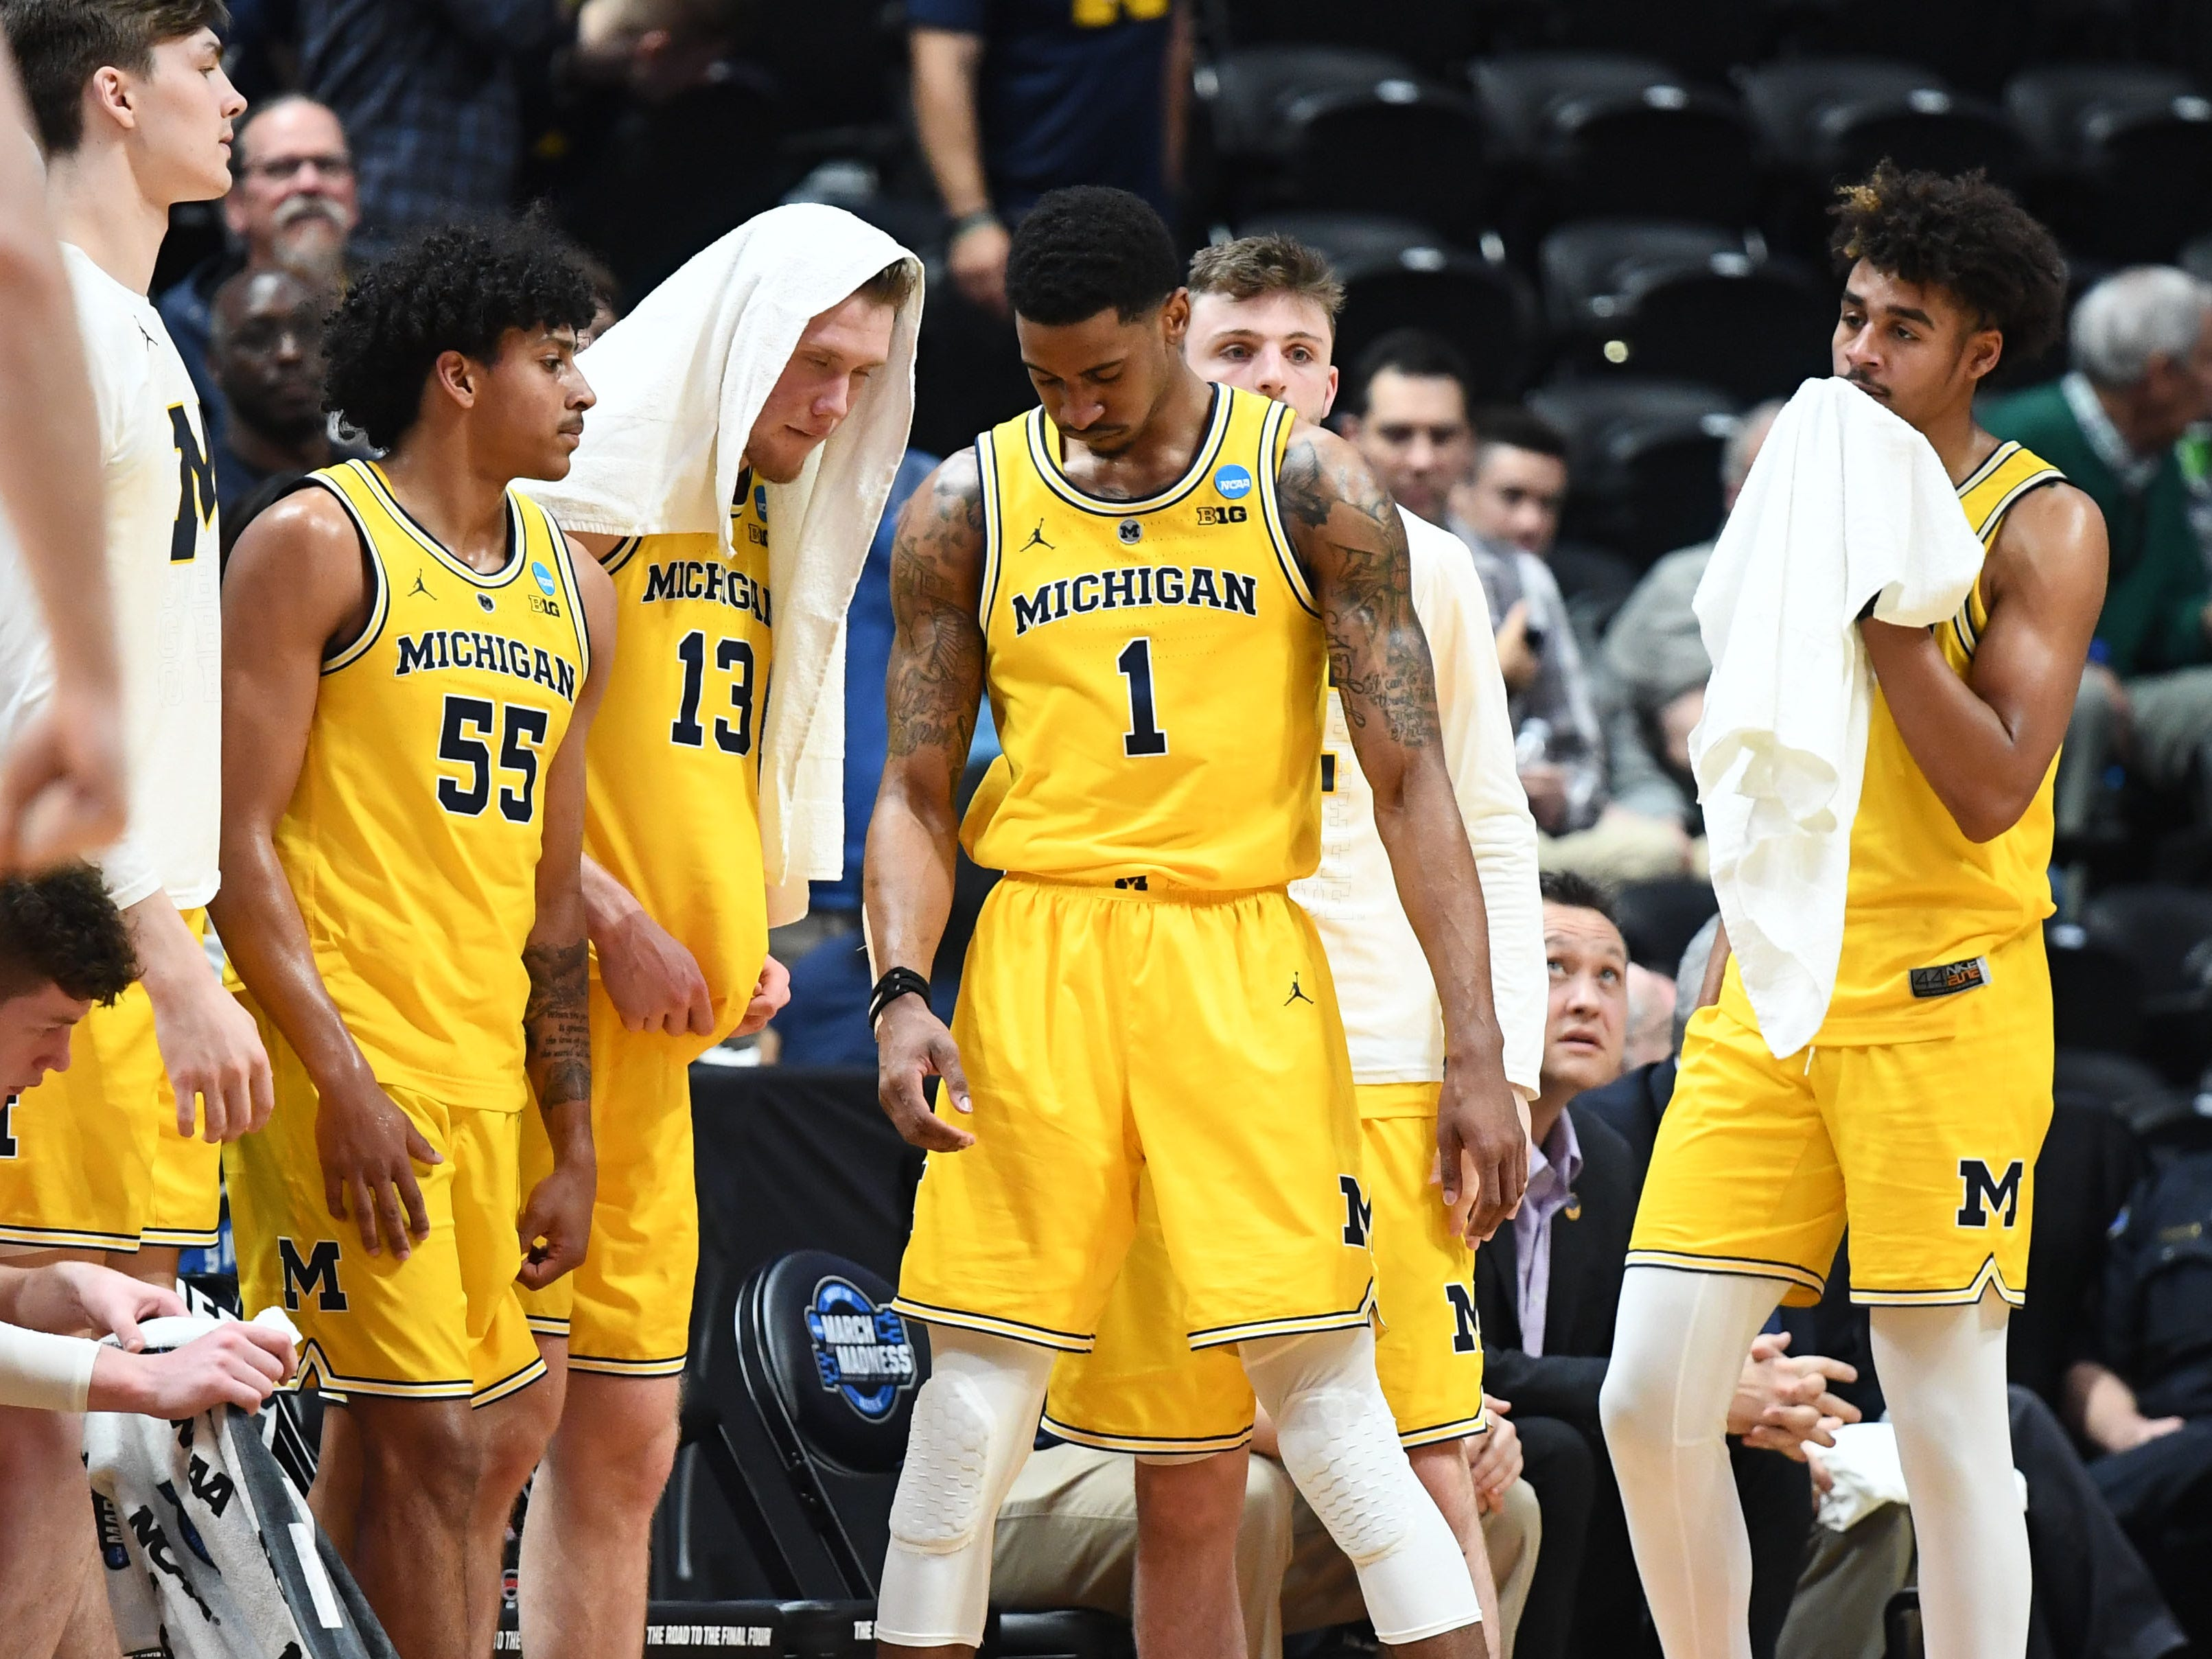 Sweet 16: No. 2 Michigan loses to No. 3 Texas Tech, 63-44.